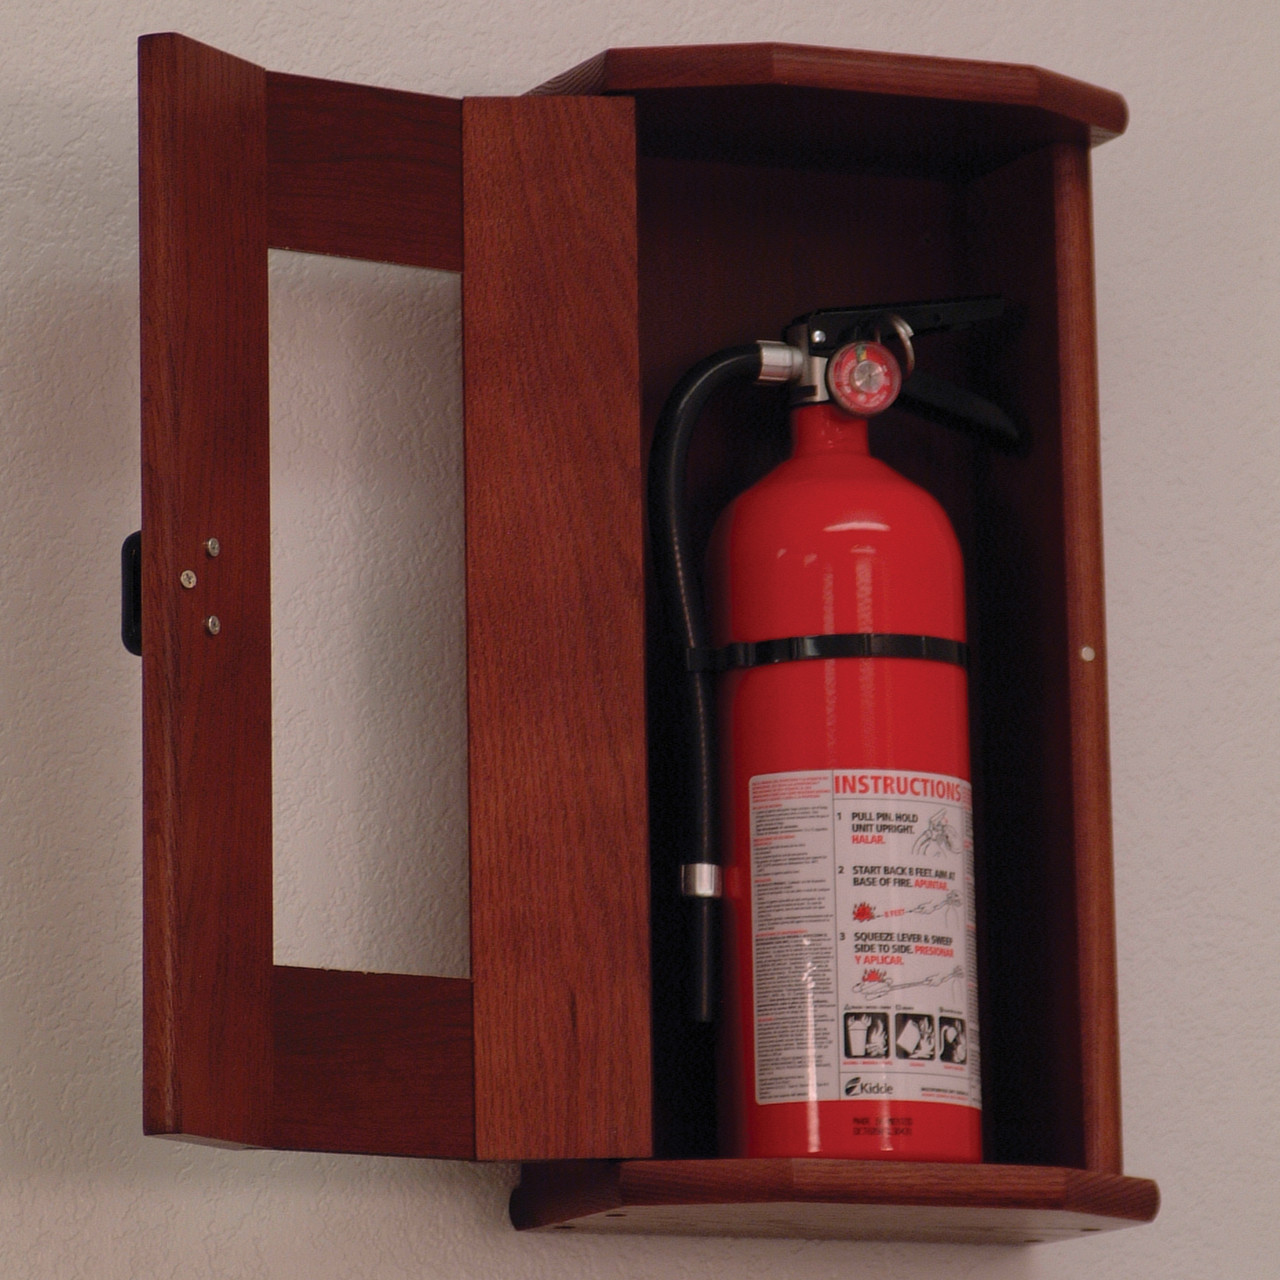 Wooden Mallet FEC21 Fire Extinguisher Cabinet With Acrylic Front Panel